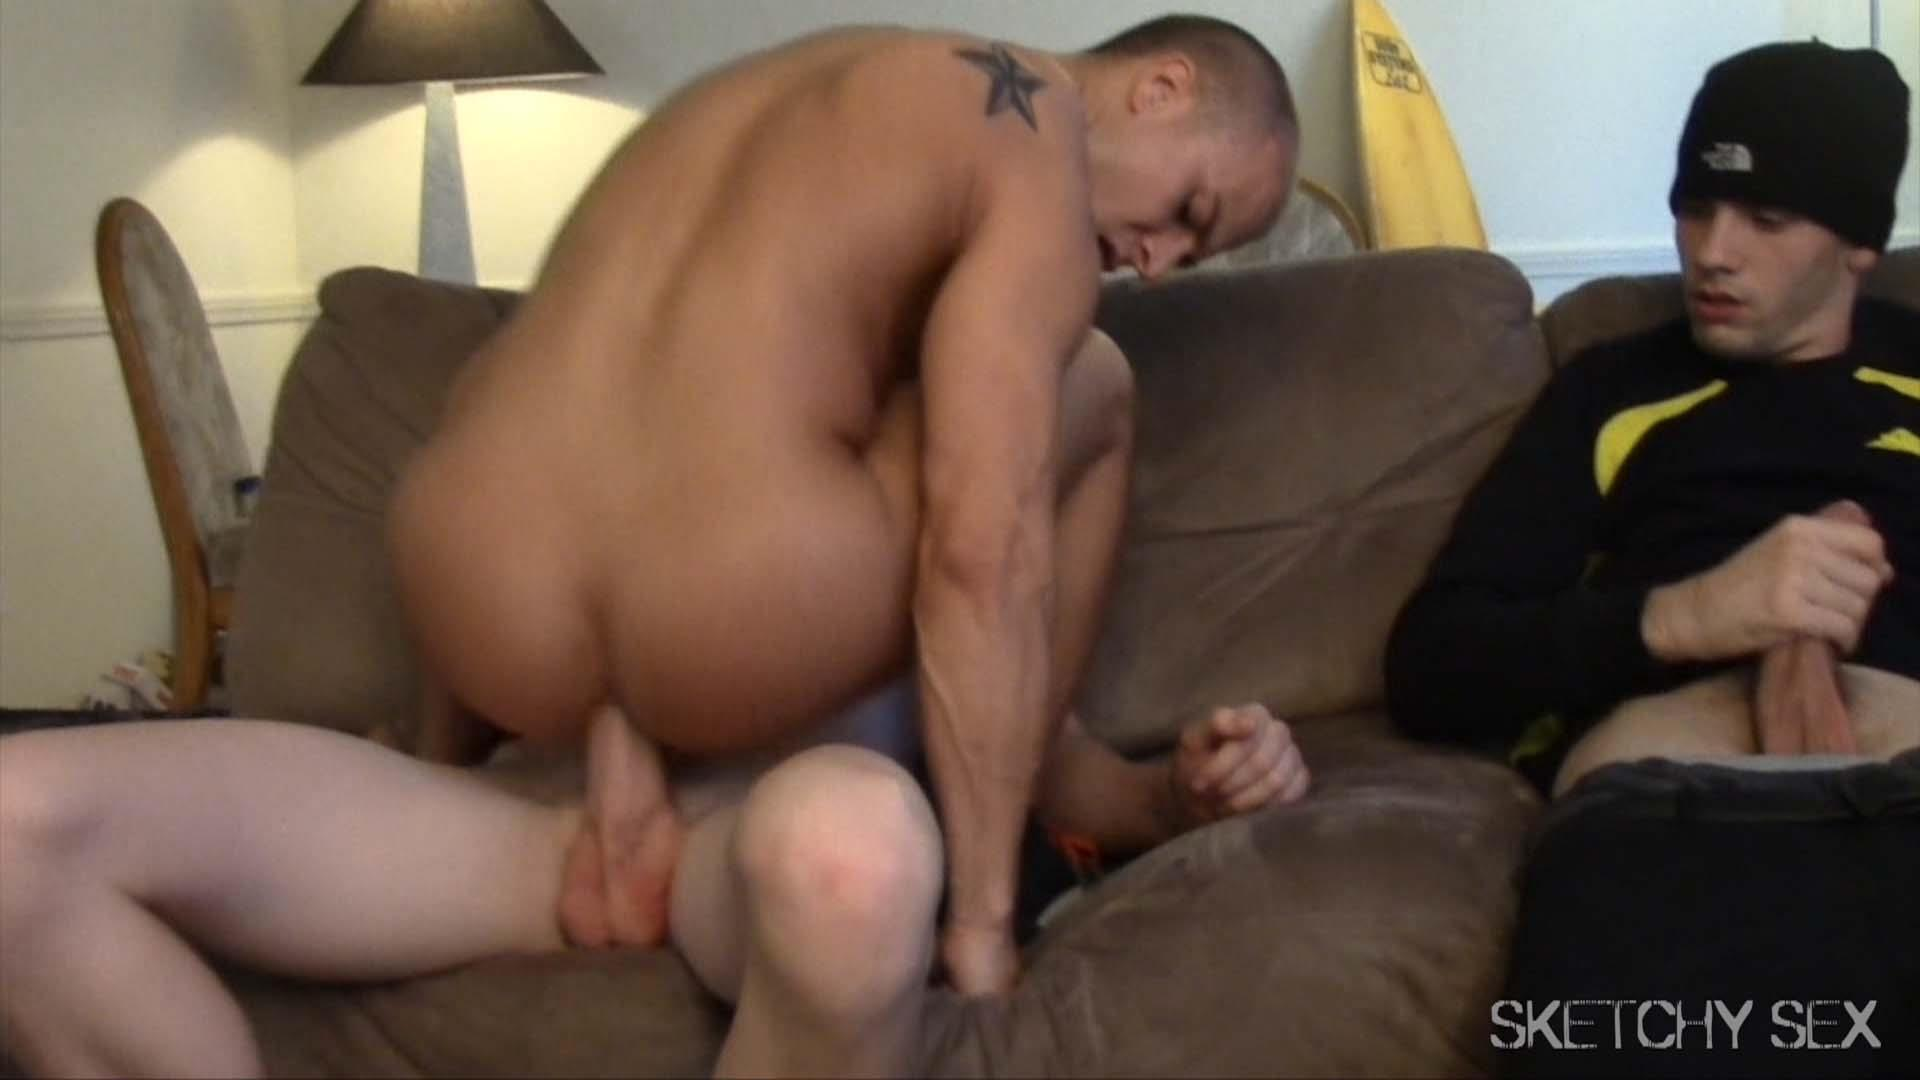 amateur sex Free vidios gay